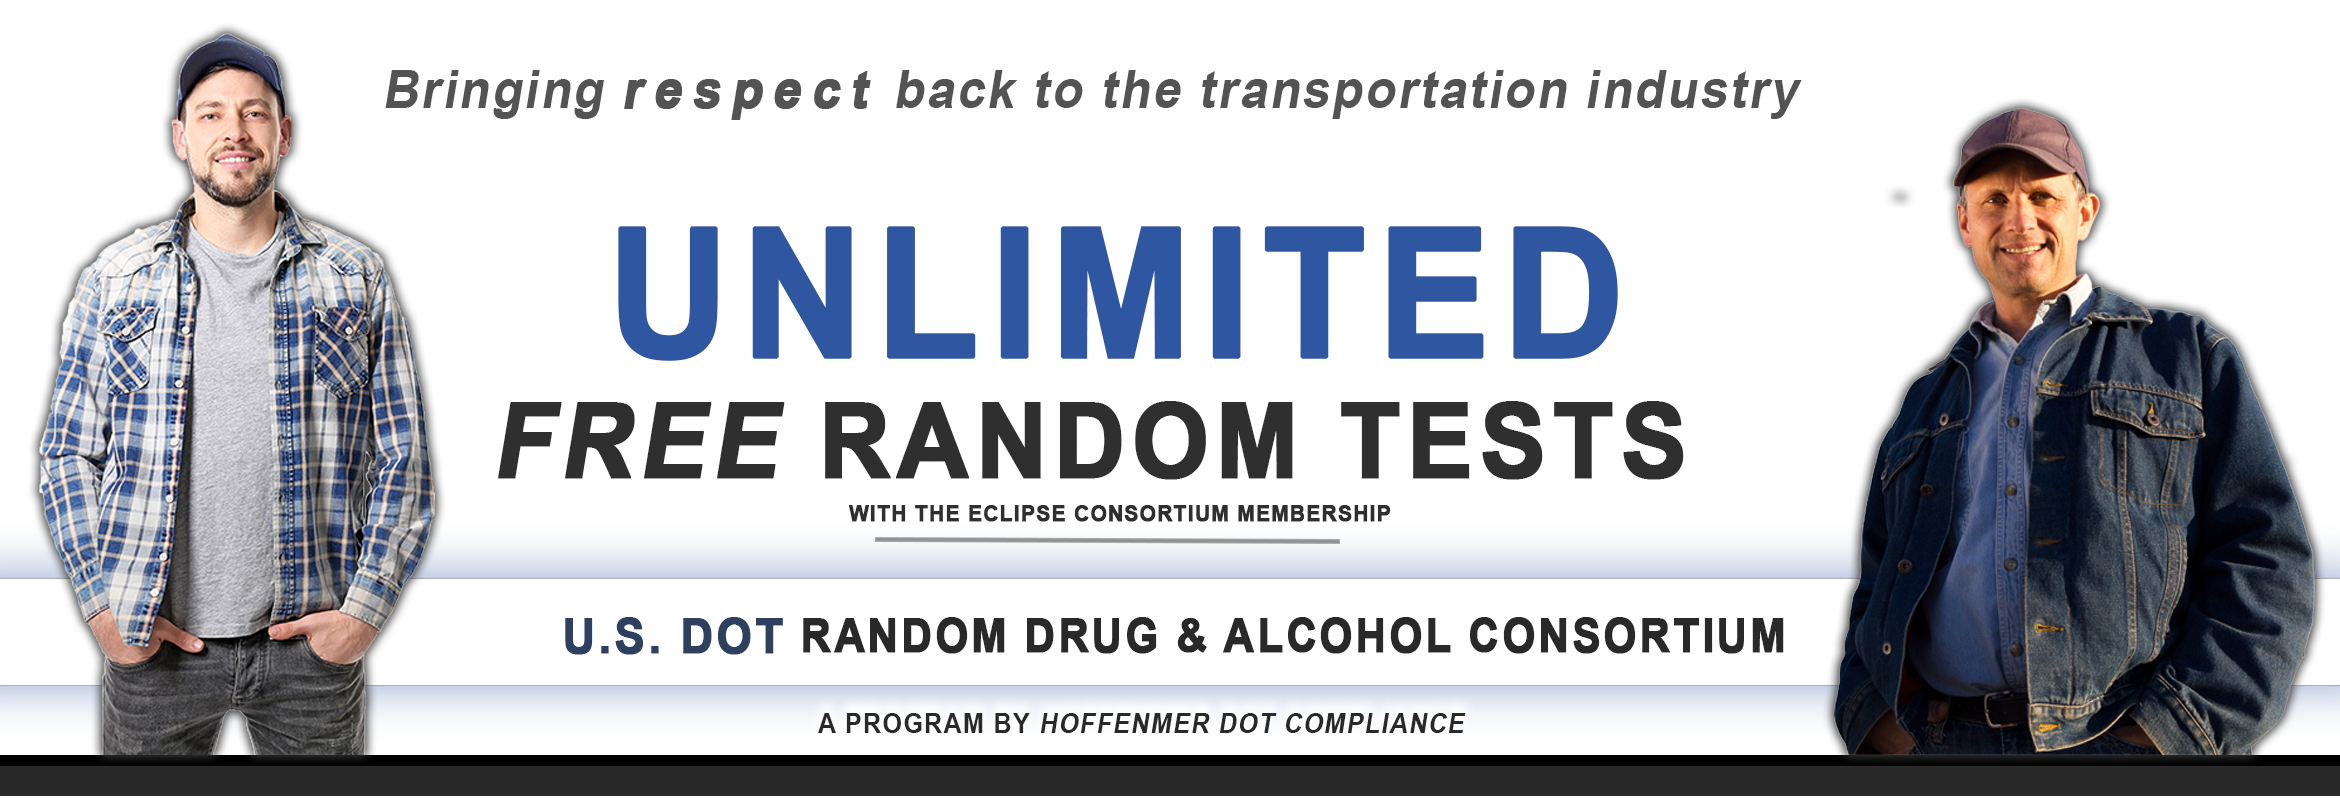 National DOT Random Drug Testing Program for Trucking Companies